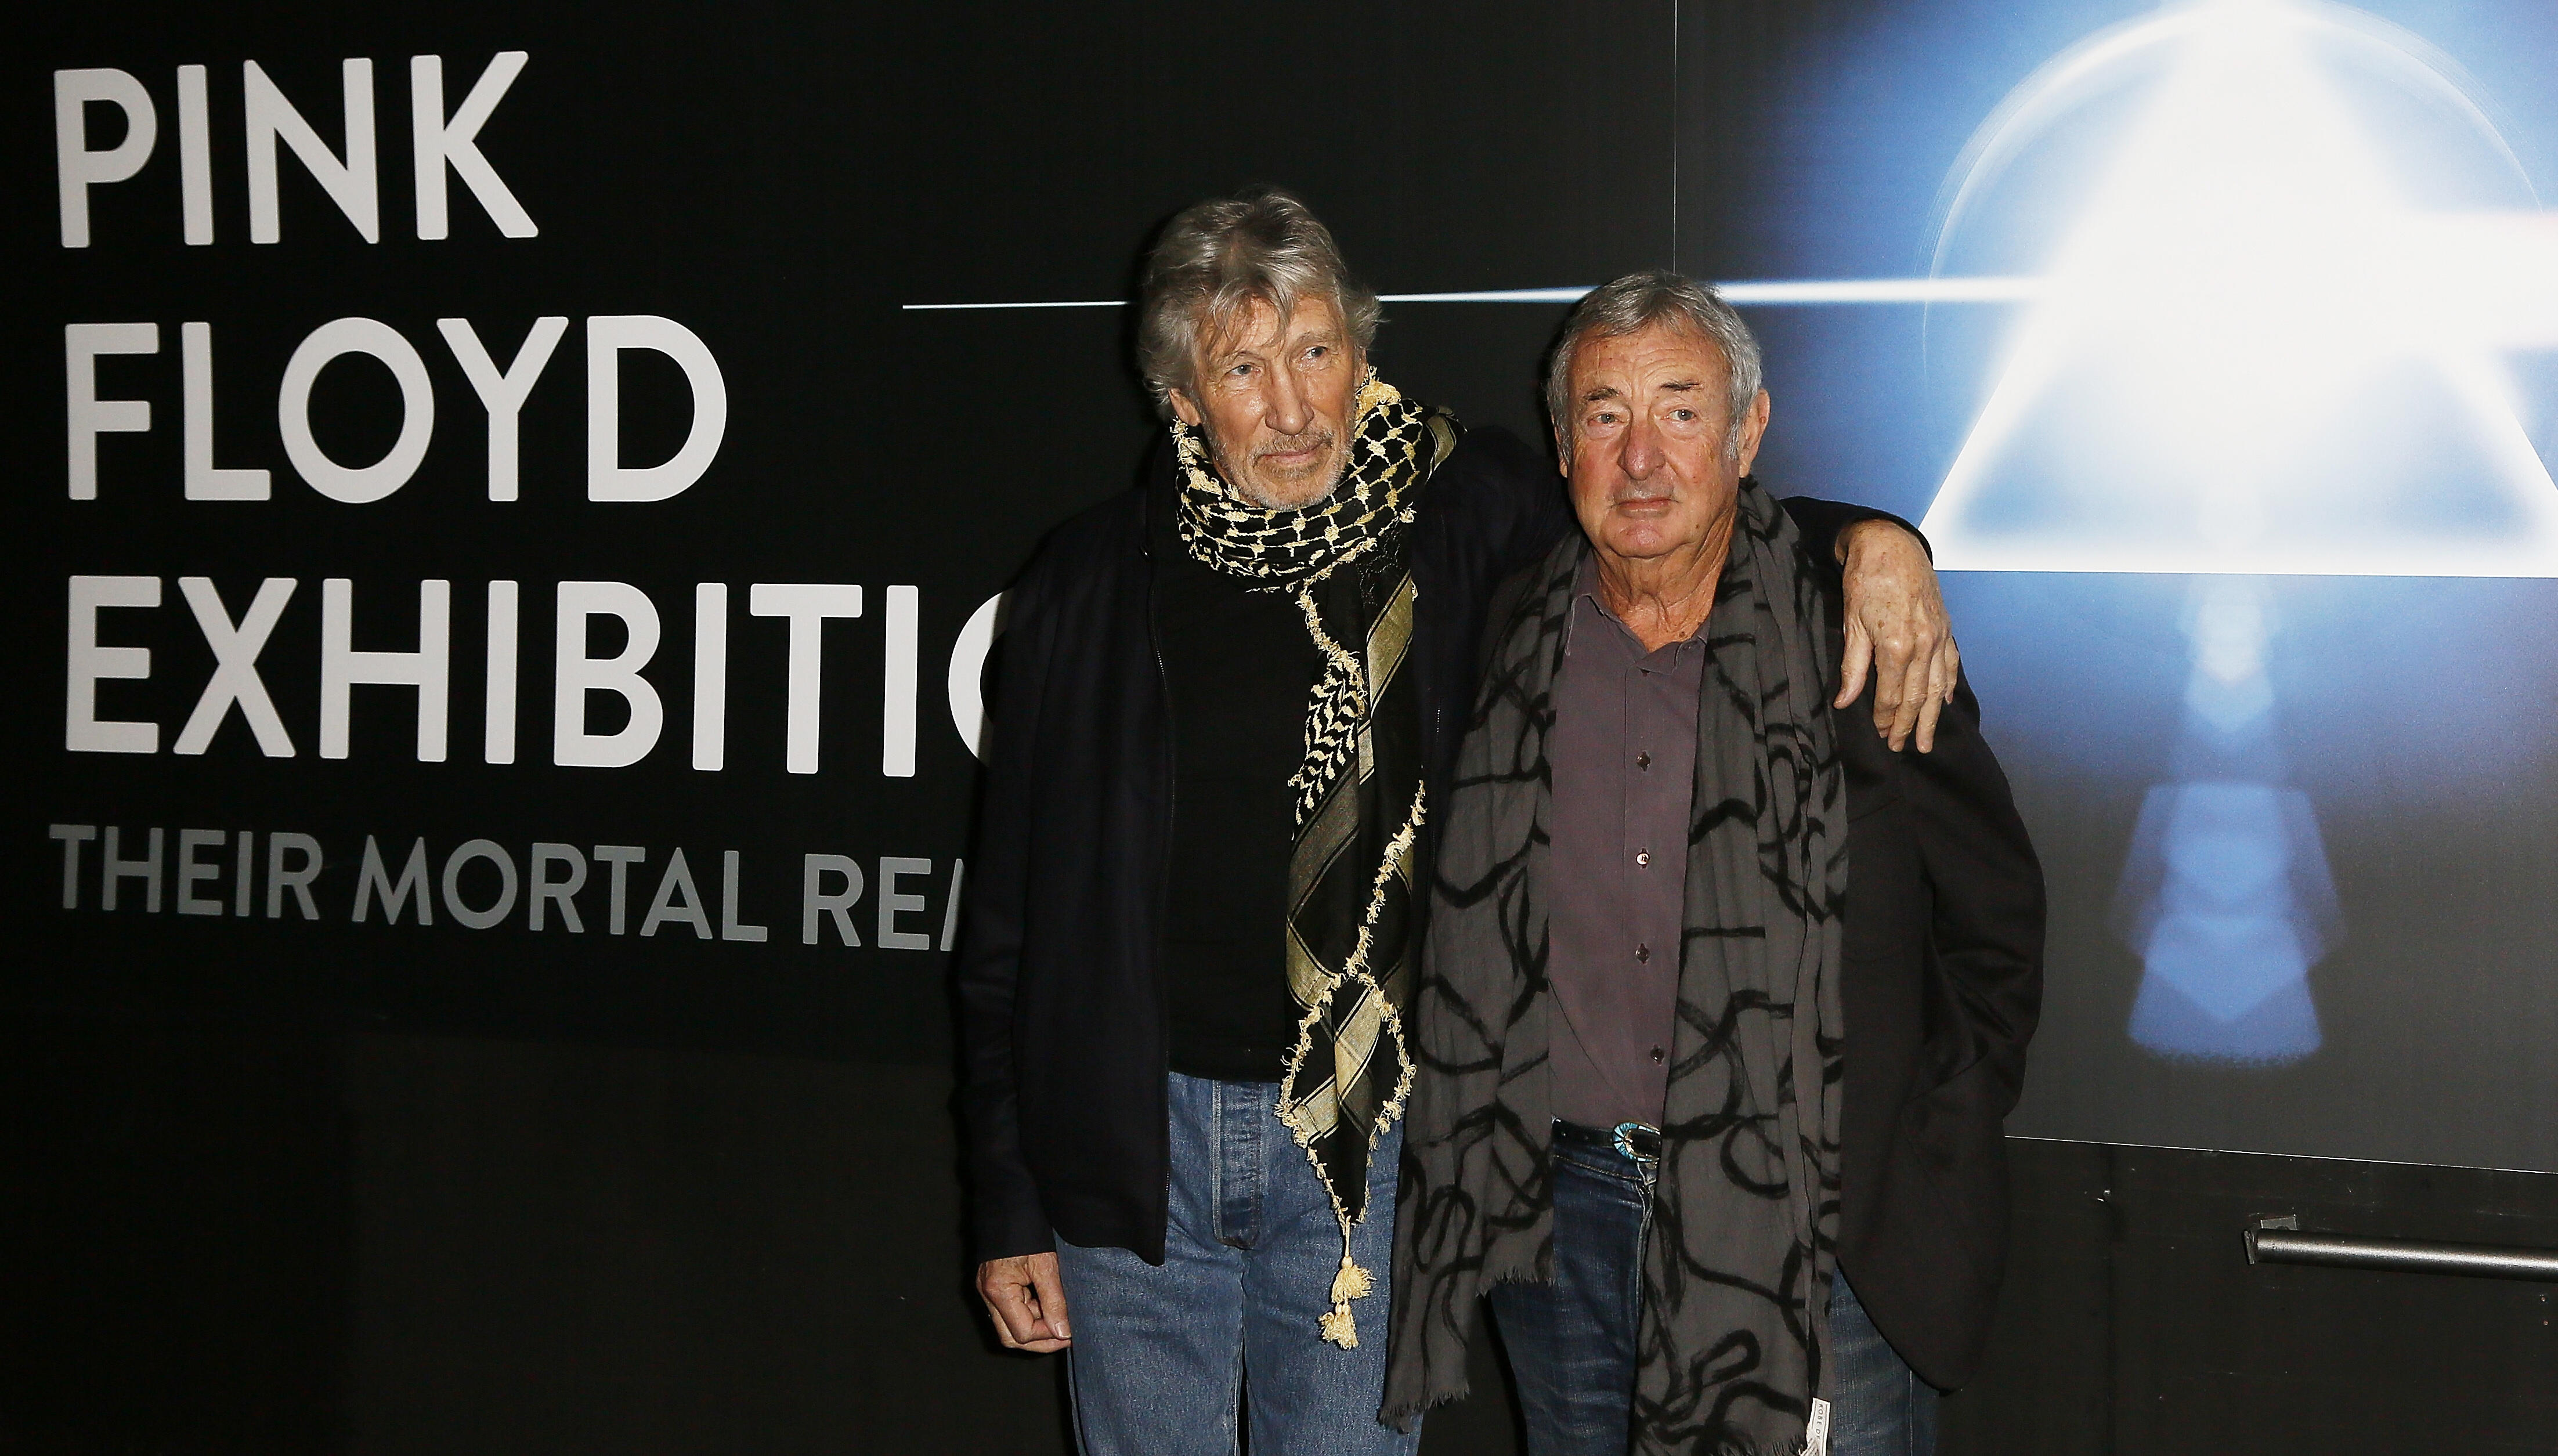 Pink Floyd's Museum Exhibition Will Arrive In The U.S. This August | iHeartRadio